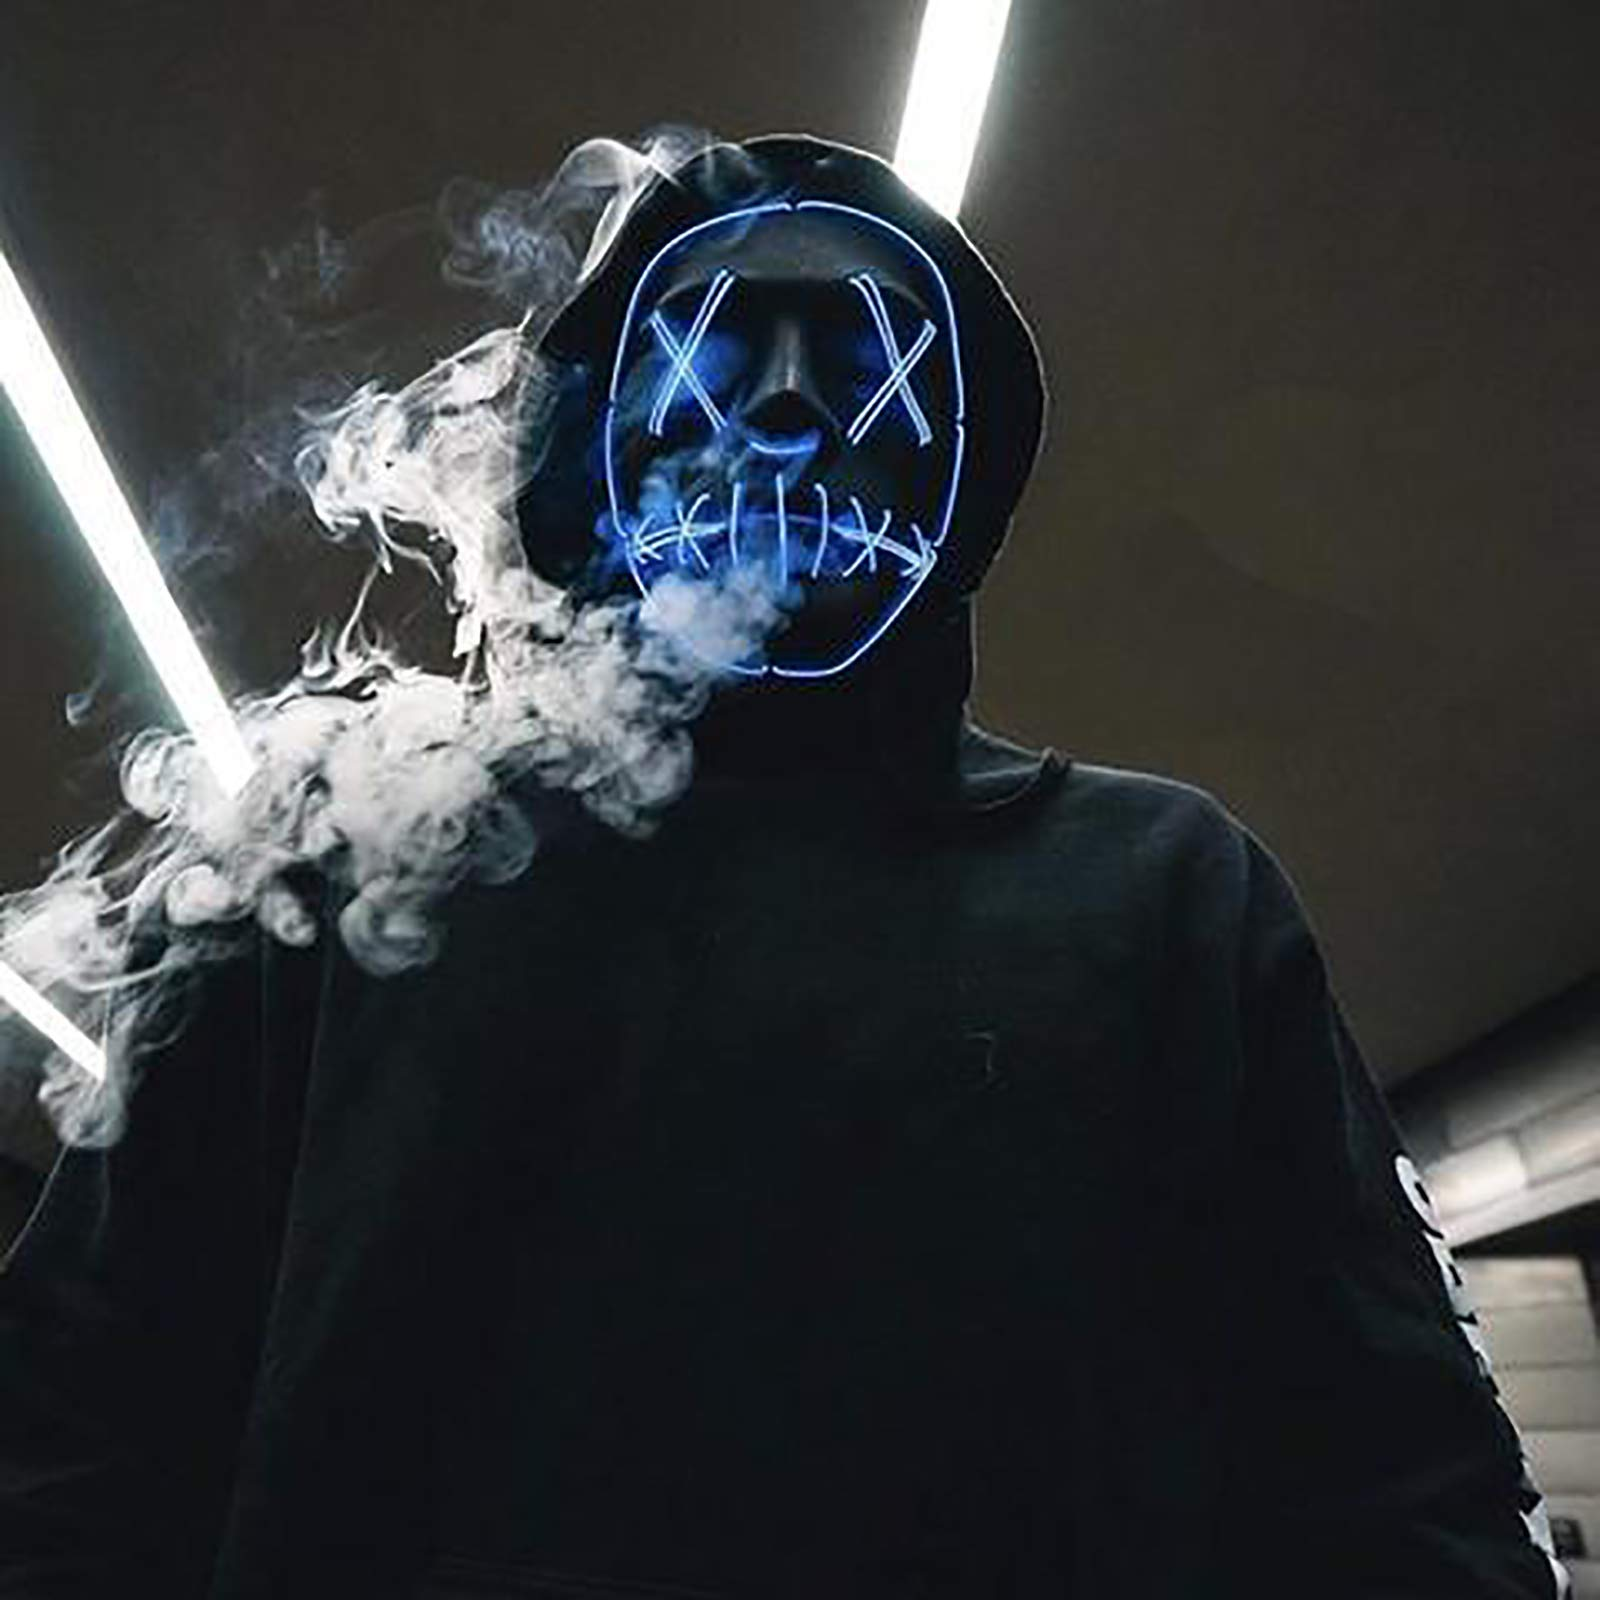 Voilamart LED Halloween Mask Halloween Scary Light up Mask EL Wire Mask Led Purge Mask for Halloween Cosplay Festival Party (Blue)